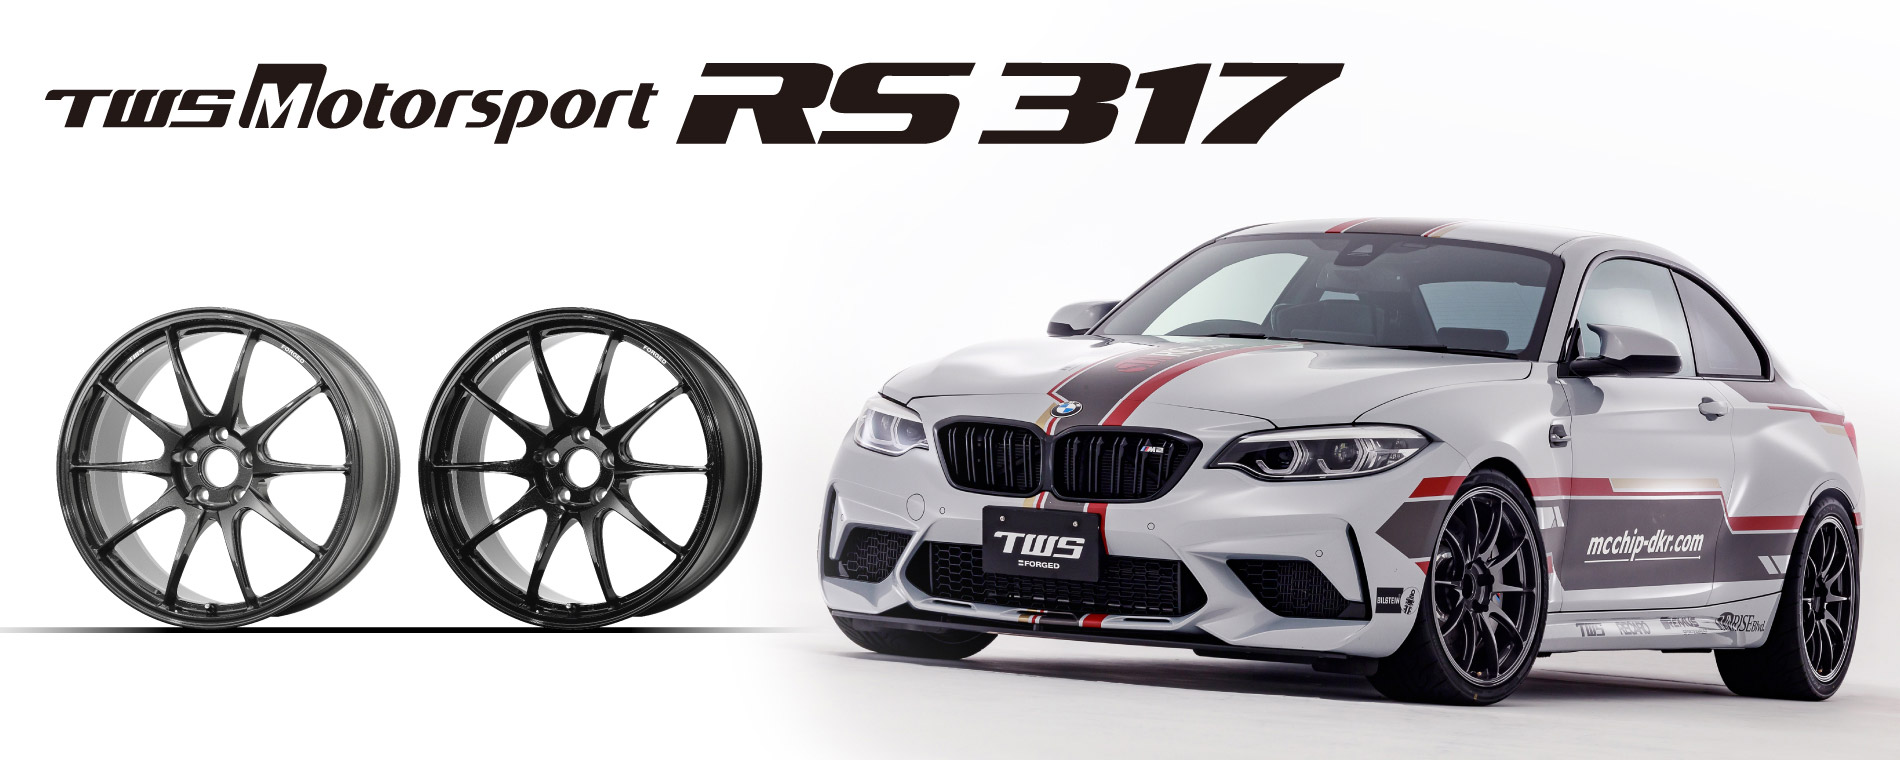 TWS Motorsport RS317